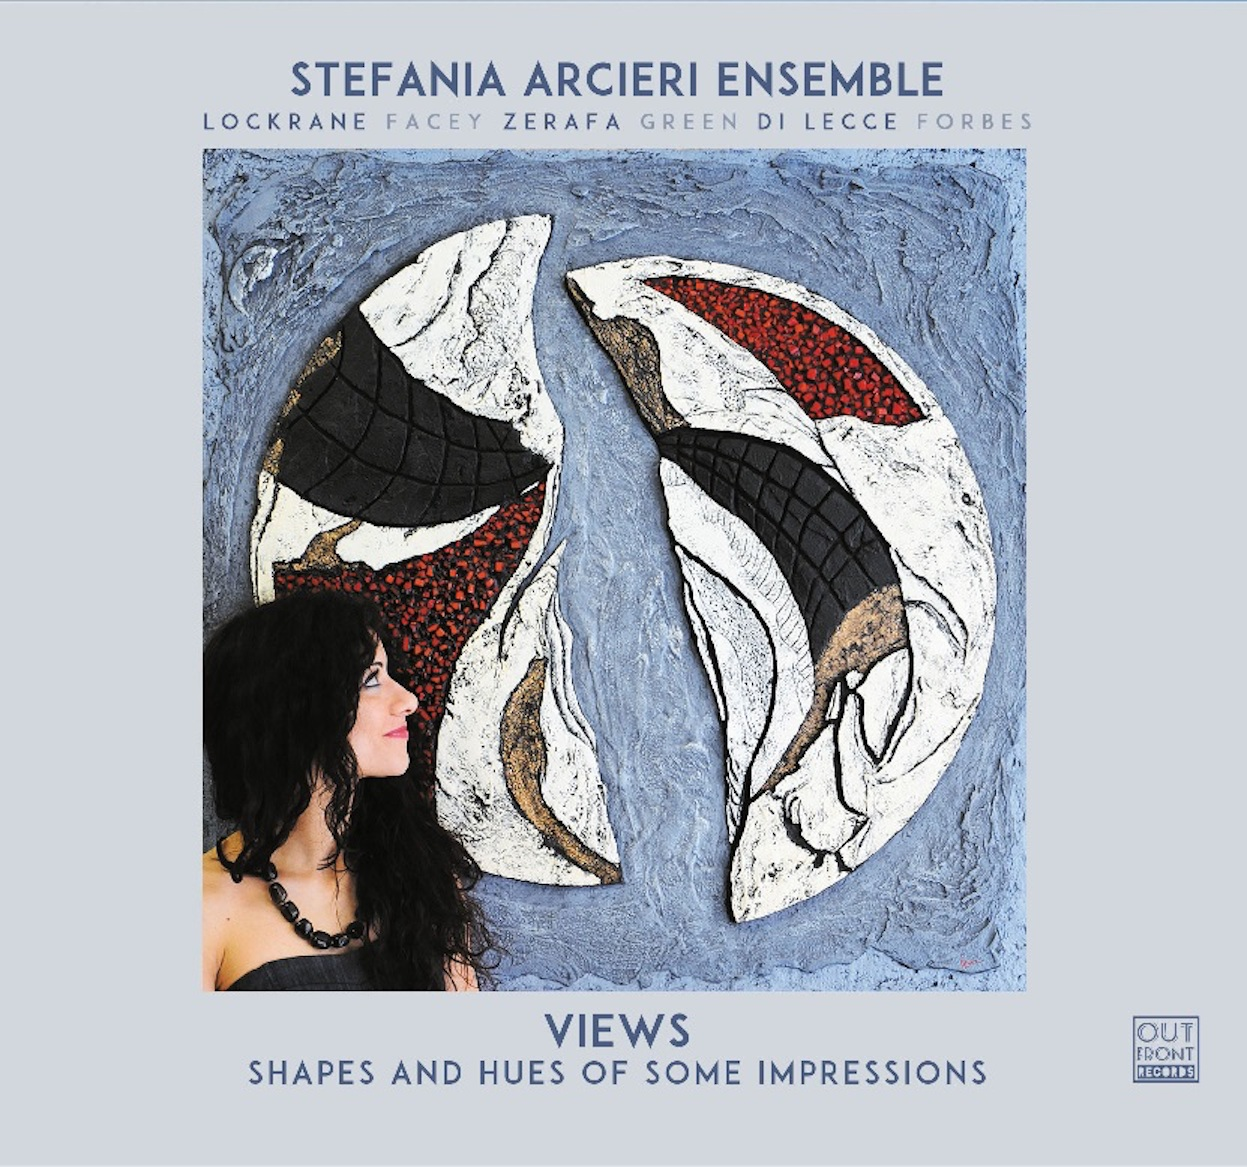 The Stefania Arcieri Ensemble brings together some of the most creative and impressive artists on the London scene and beyond. This extraordinary line-up will deliver a fervent and thrilling performance for a night full of exciting improvisations, interplay and uniqueness.  The Crypt at St Giles Church  Friday 22 June 8 - 10pm. £8 or £5 (Conc)